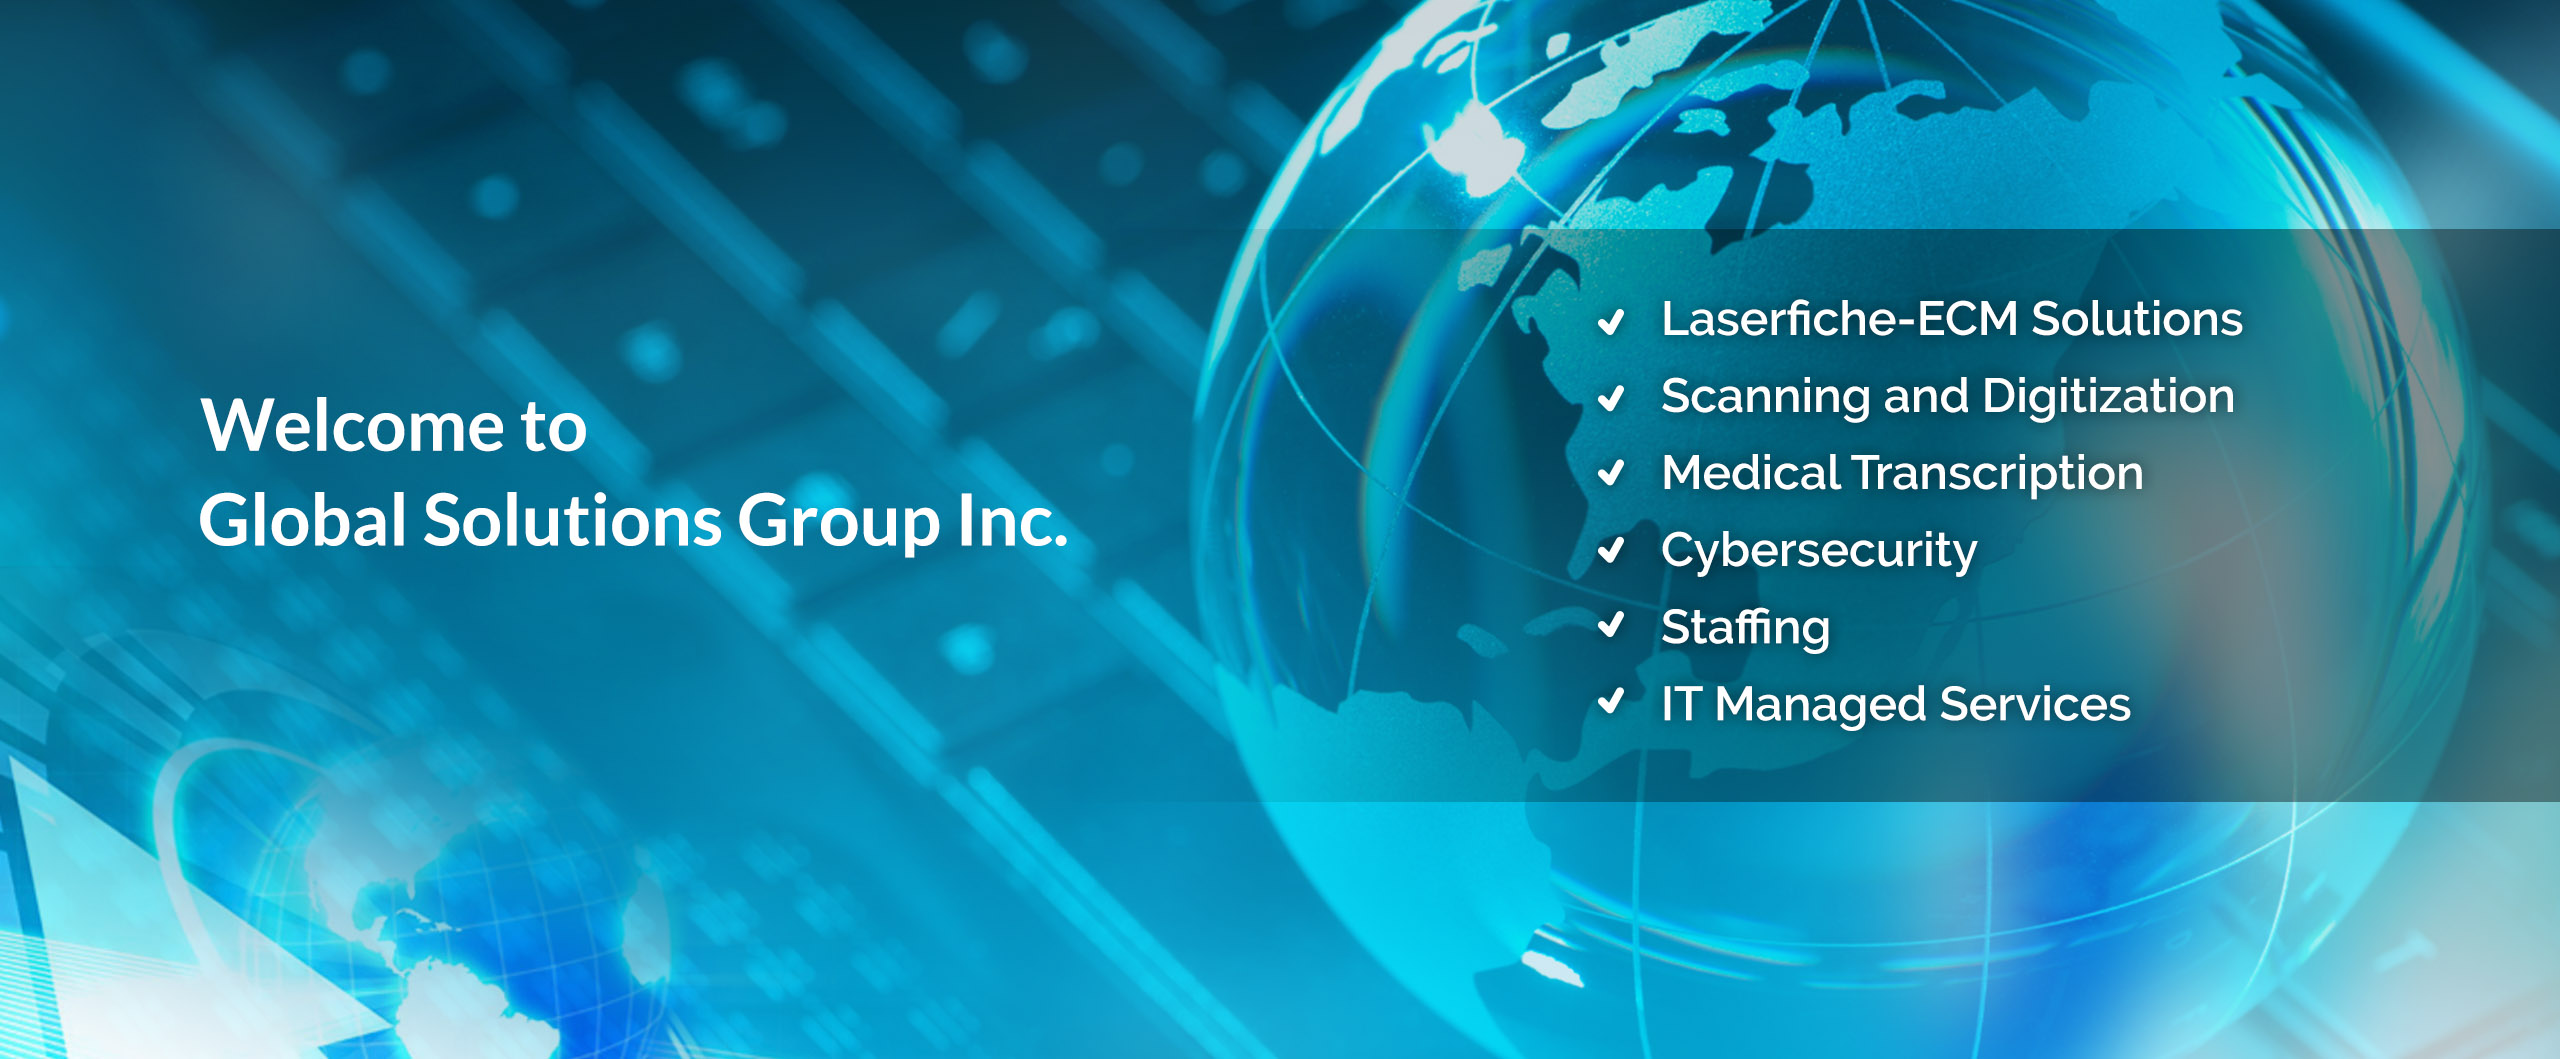 Welcome to Global Solutions Group